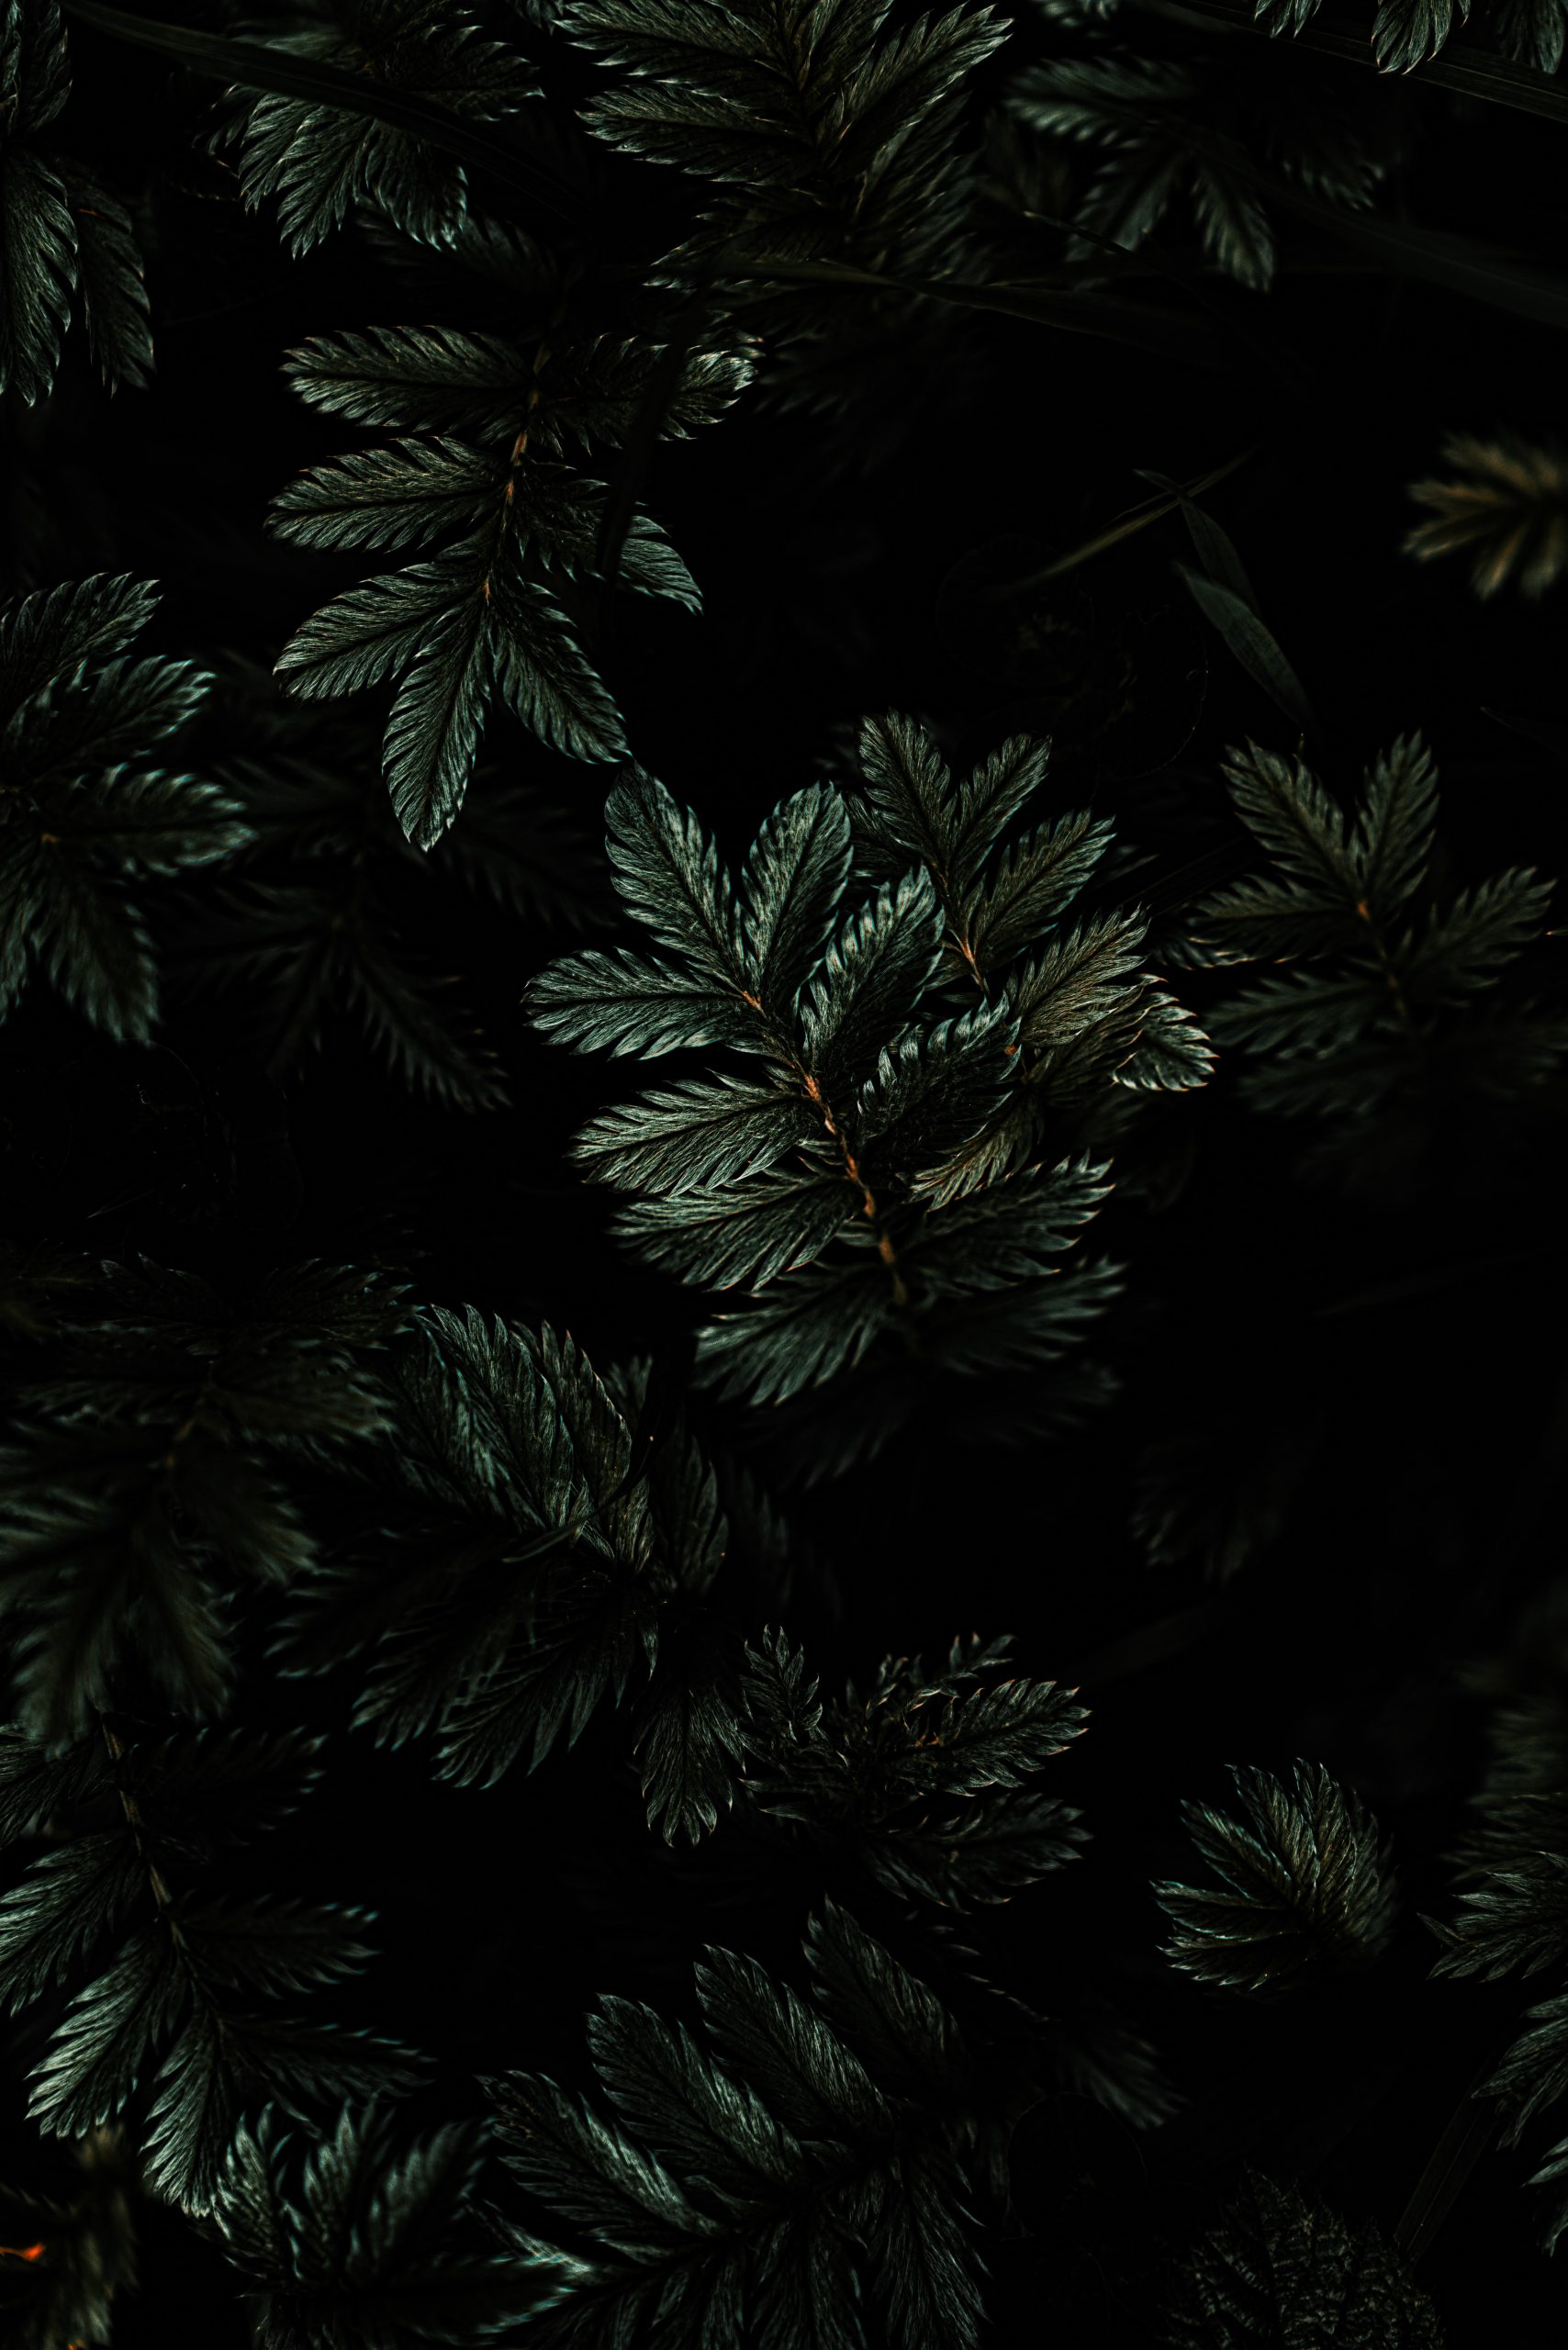 60 Aesthetic Dark Wallpapers for iPhone | Looking for the perfect moody black wallpaper for your iPhone? Here are the best black HD backgrounds you can download FOR FREE! Be warned, you just may fall in love with all of these dark backgrounds!